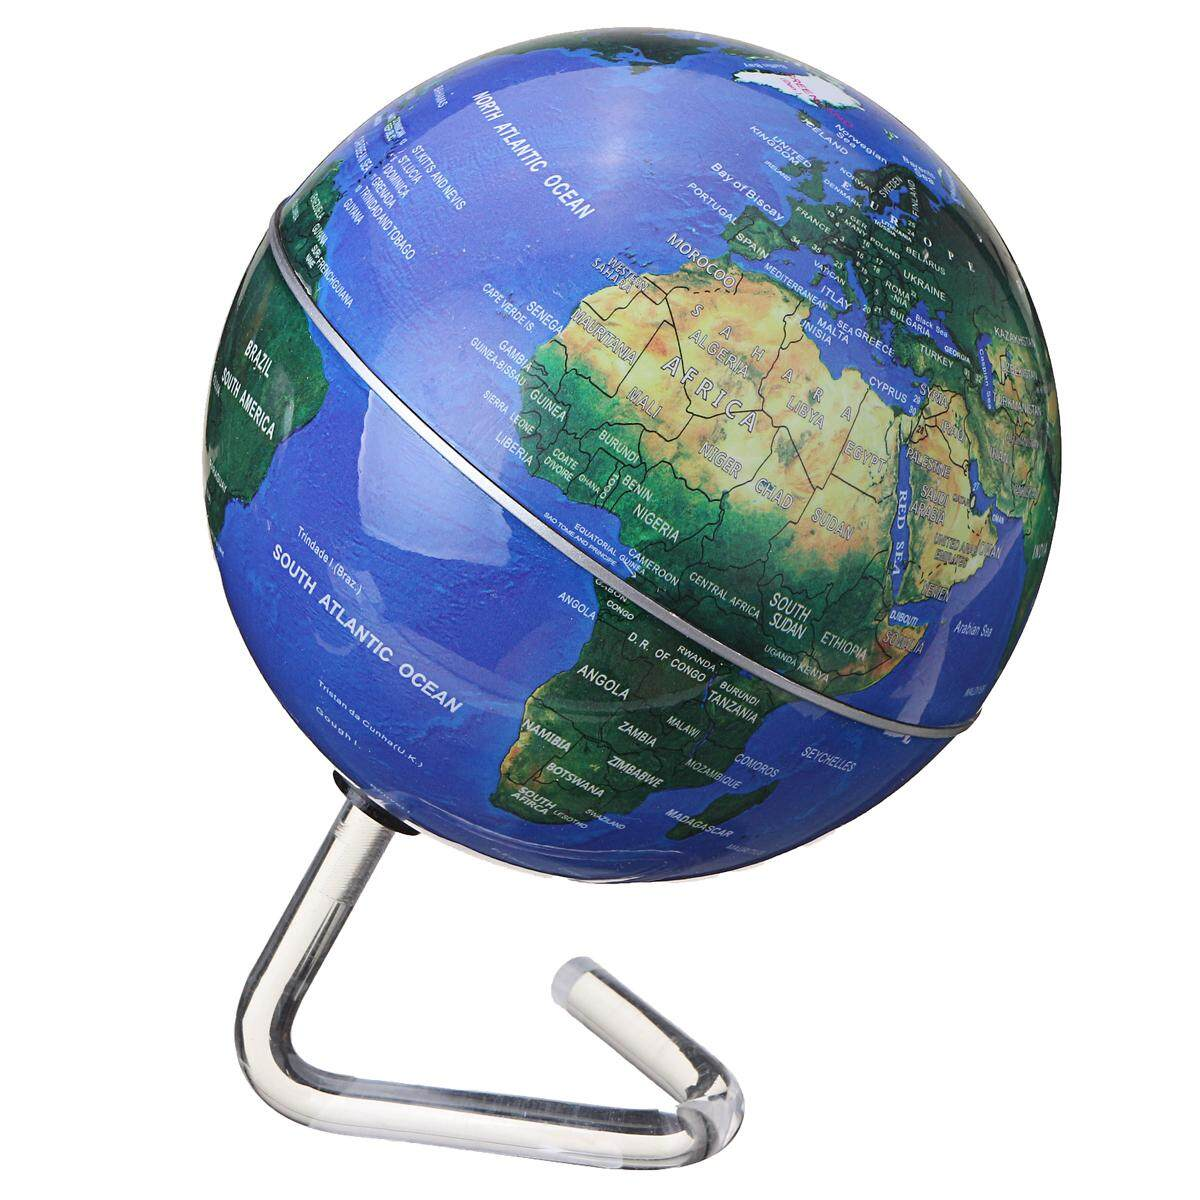 Rotating Desktop Globes Earth Ocean Globe World Geography Table Decor By Teamwin.